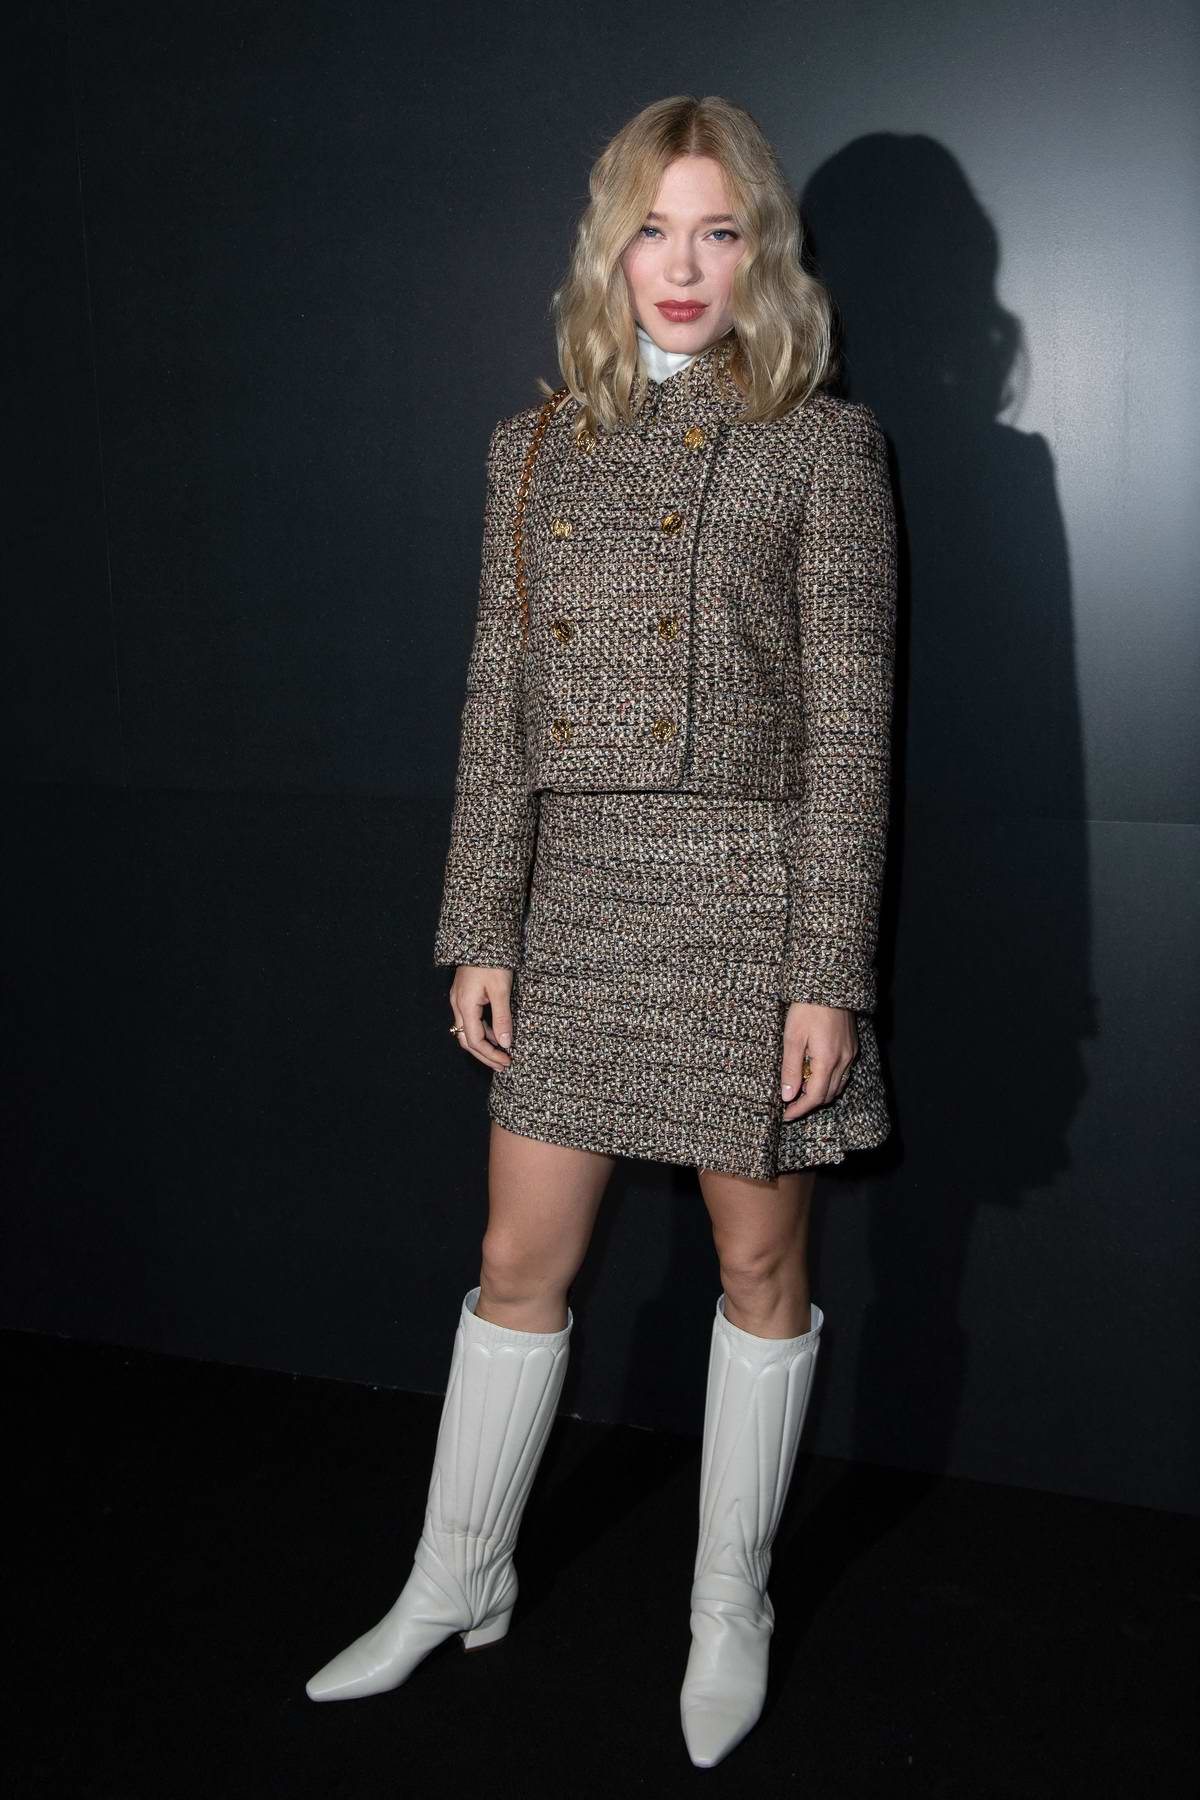 Lea Seydoux attends the Louis Vuitton fashion show, F/W 2020 during Paris Fashion Week in Paris, France